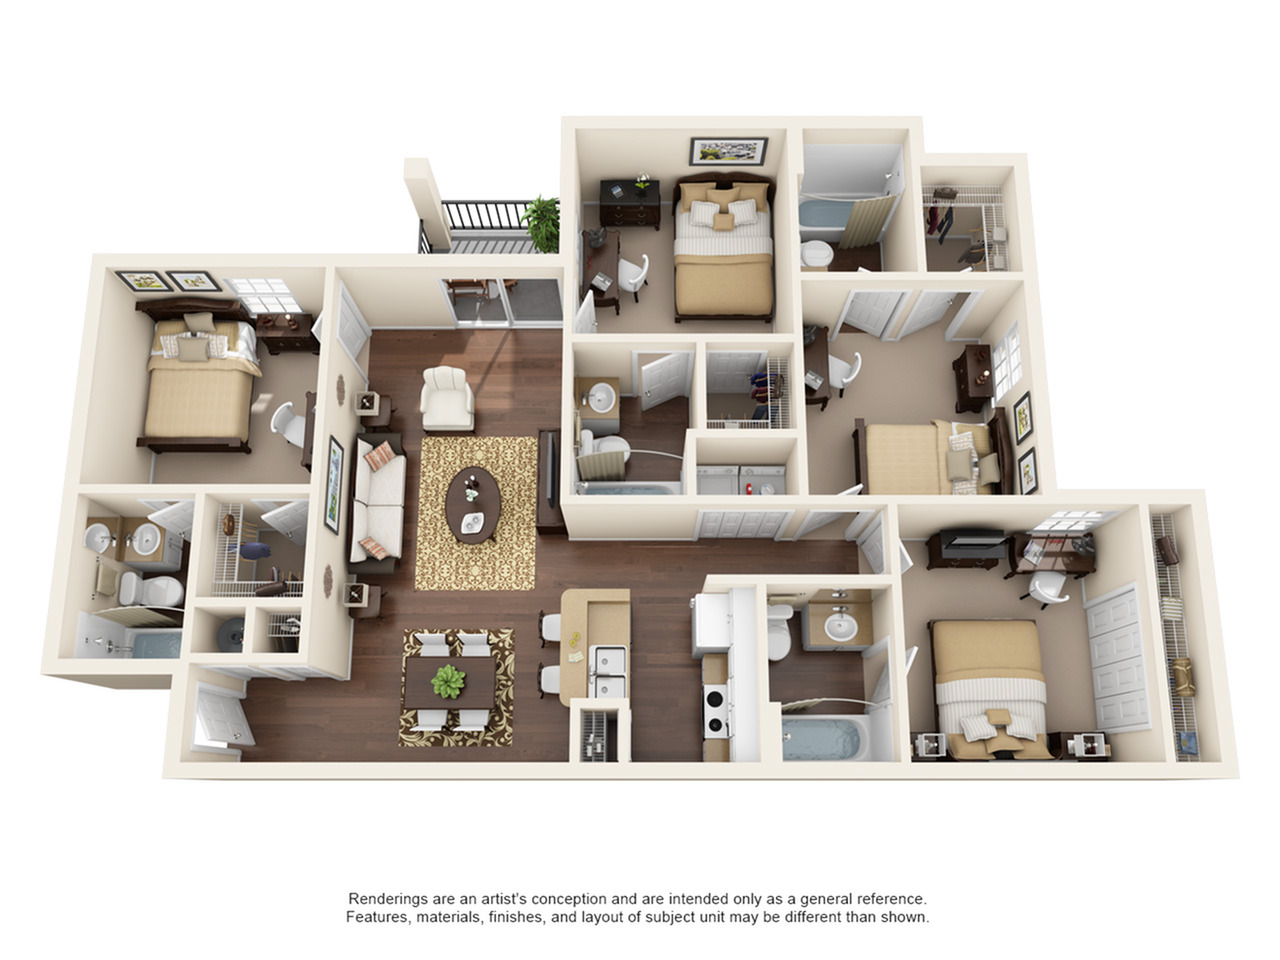 4 bedroom apartments orlando fl - Four bedroom apartments in orlando fl ...